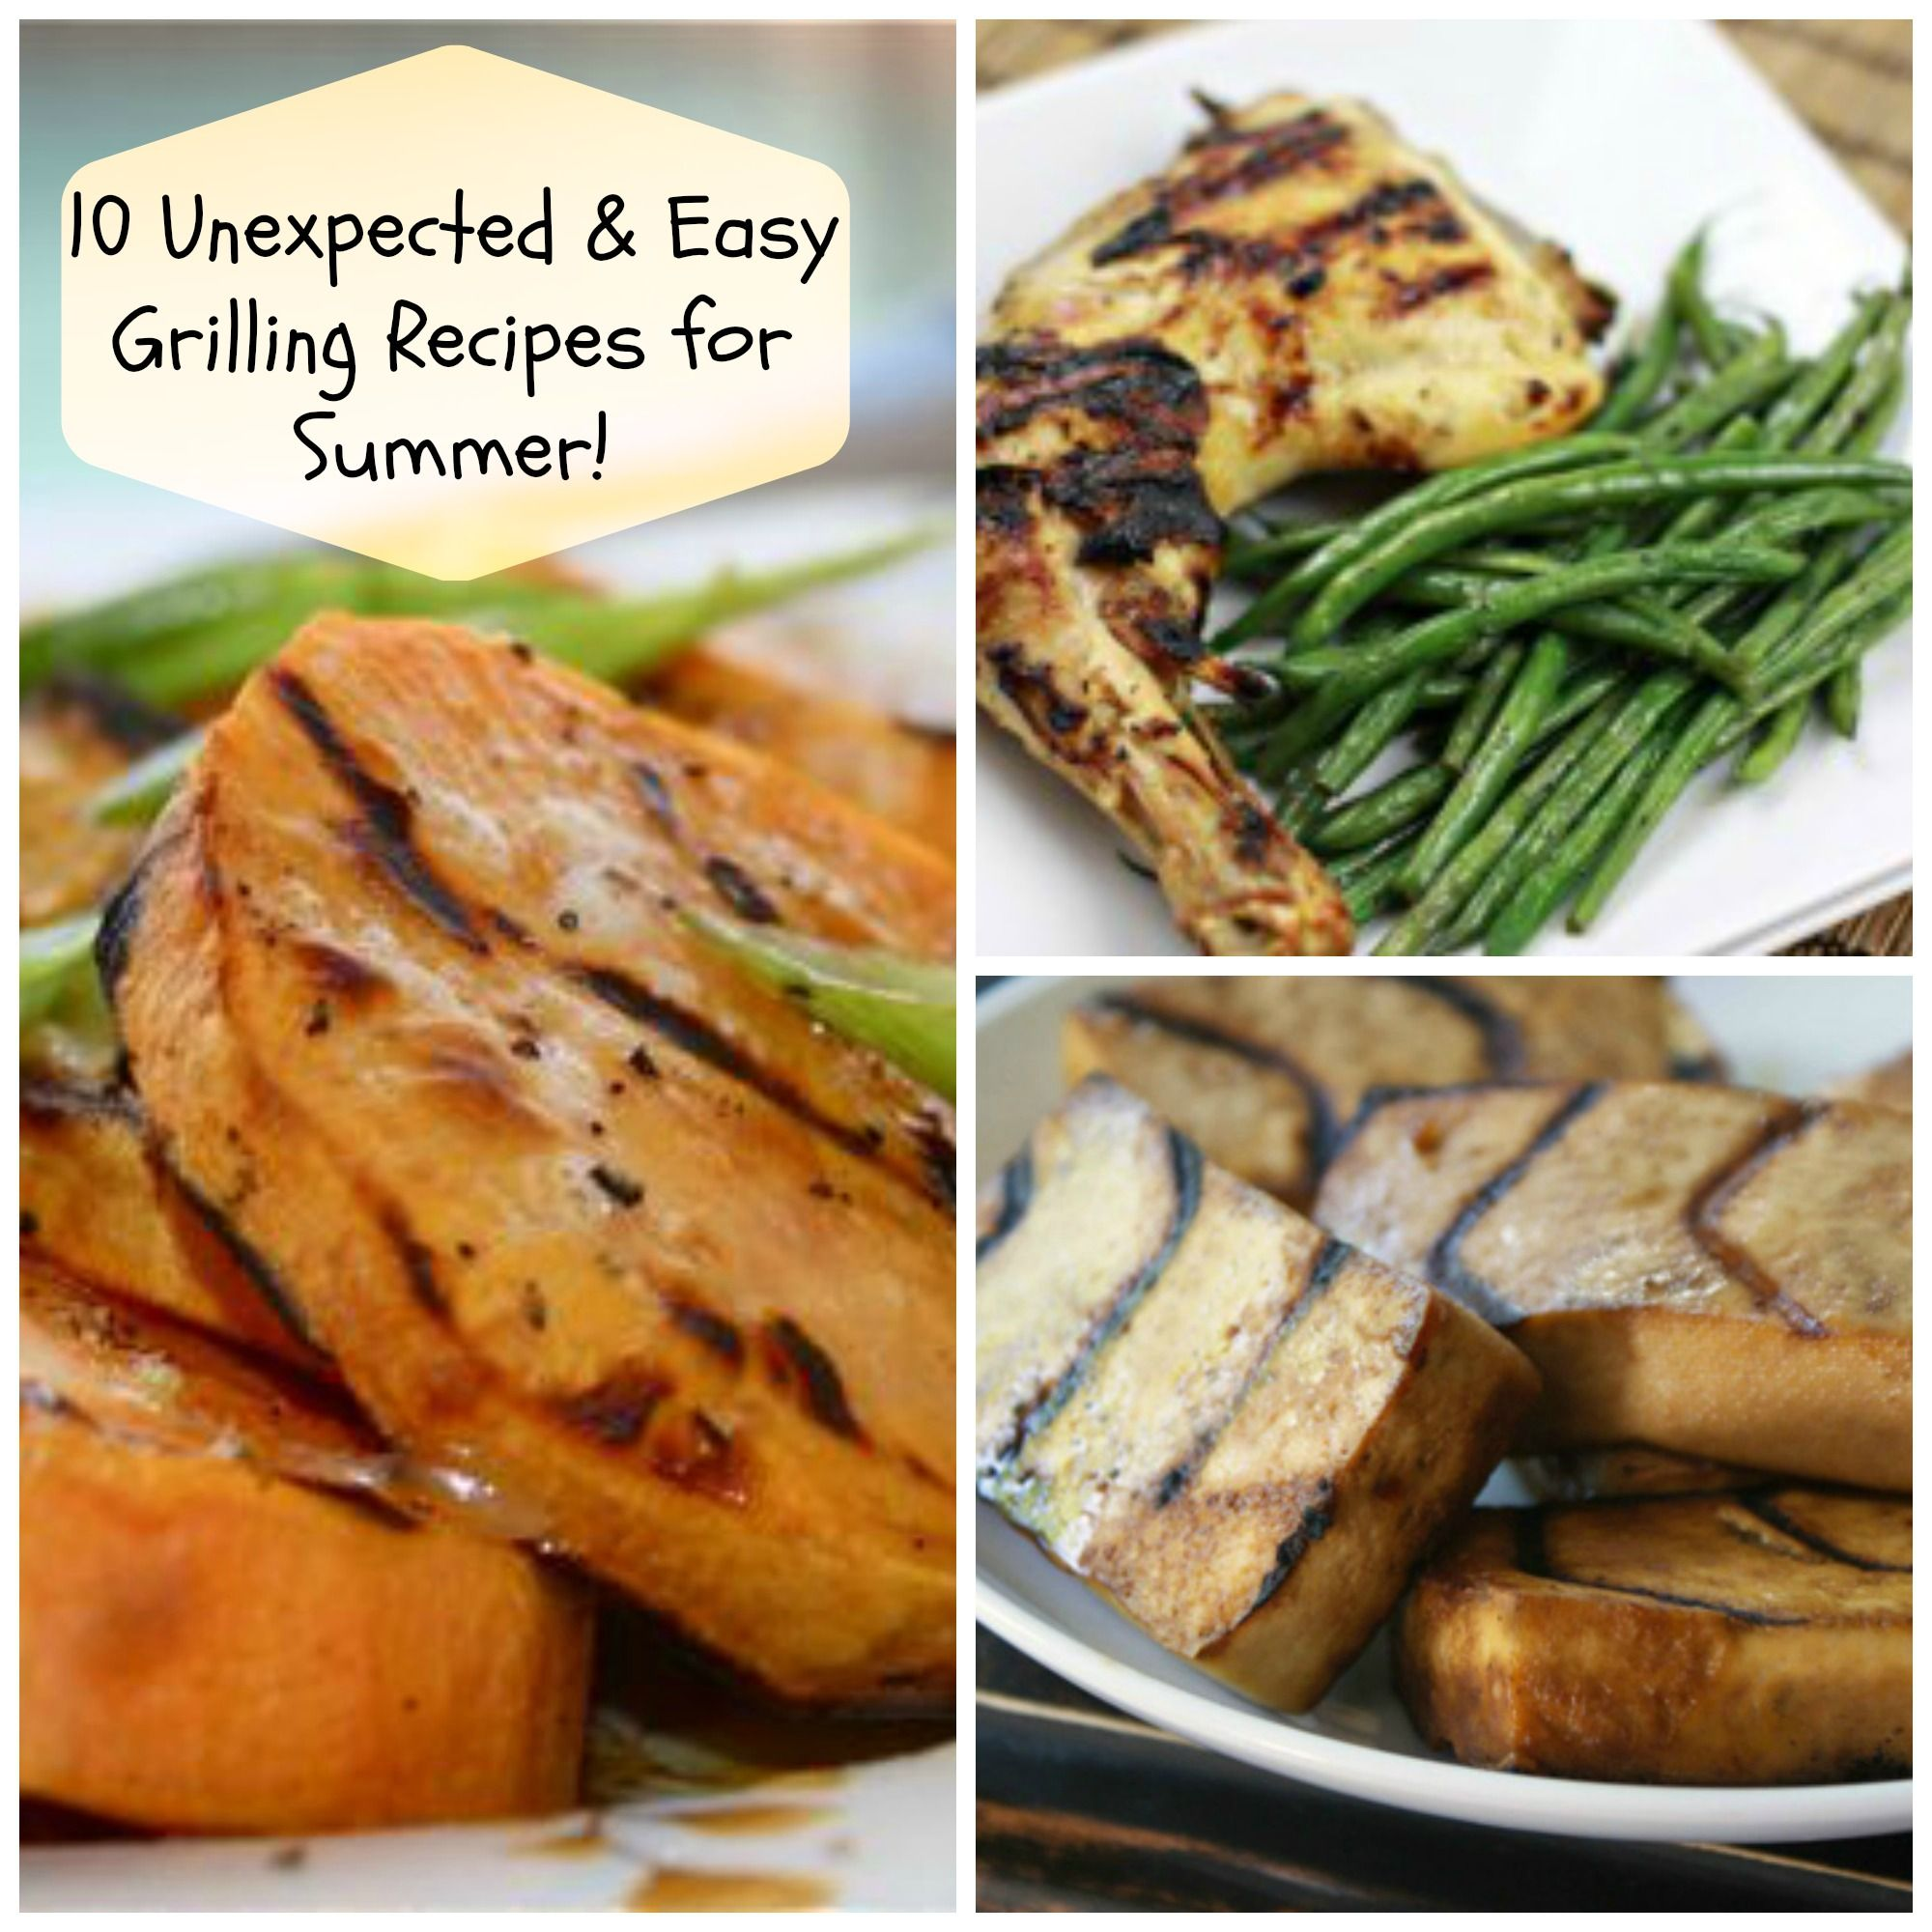 5 Simple Spring Meals On The Grill: 10 Easy & Unexpected Grilling Recipes For Summer